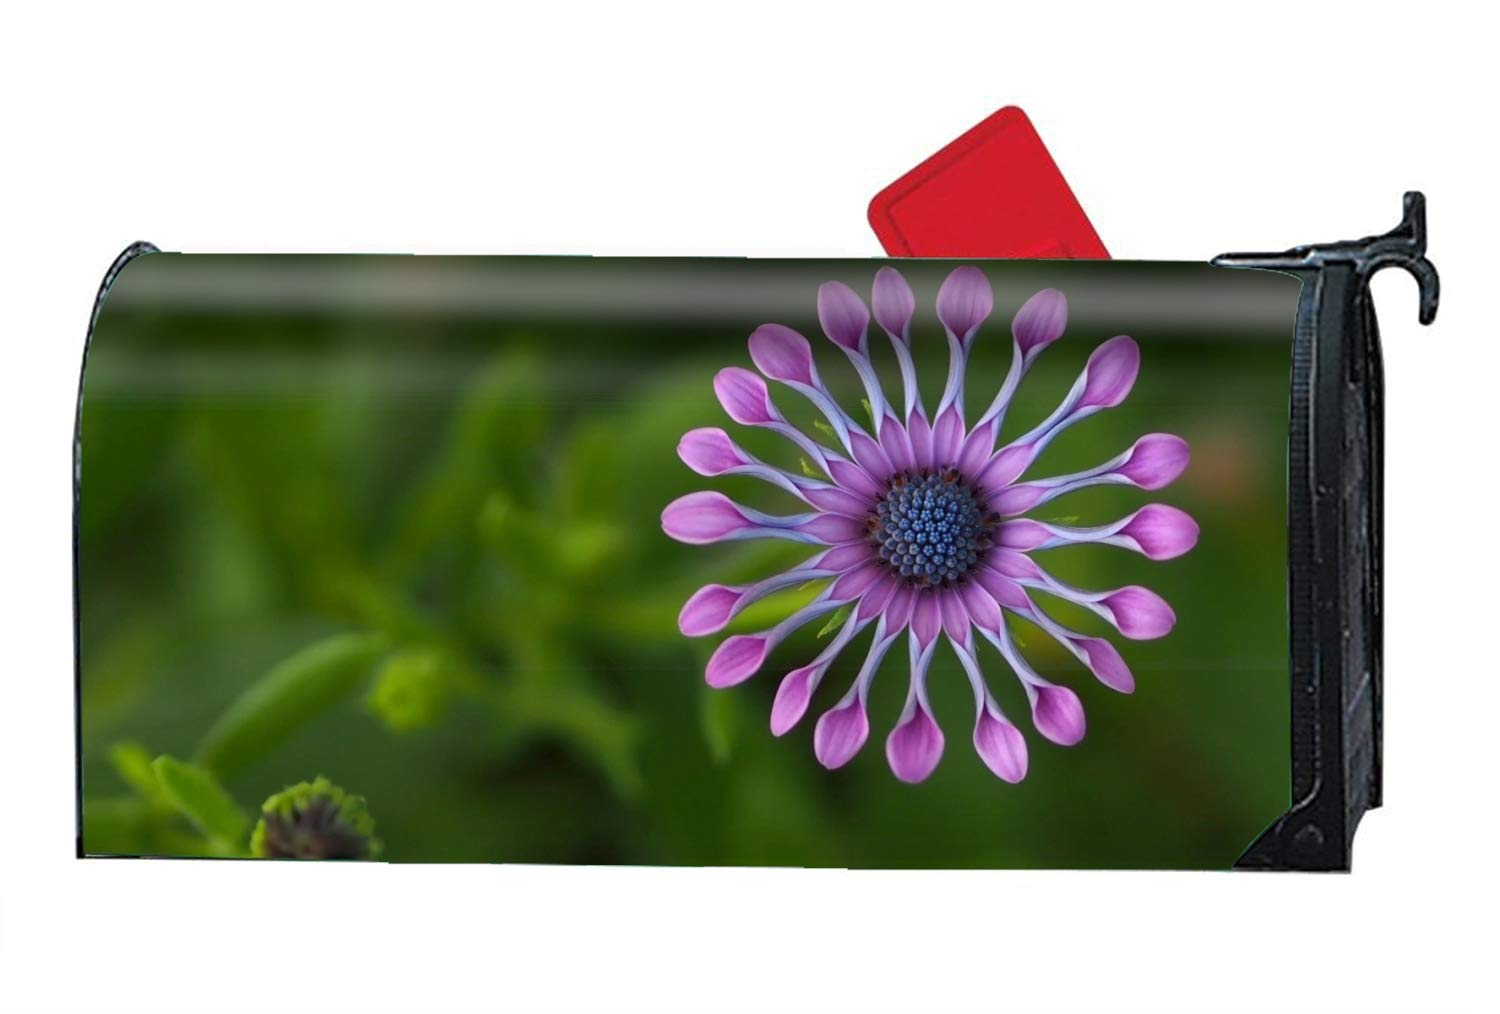 KSLIDS Earth African Daisy Flower Magnetic Mailbox Cover - Holiday Themed, Decorative Vintage Mailbox Wrap for Standard Size